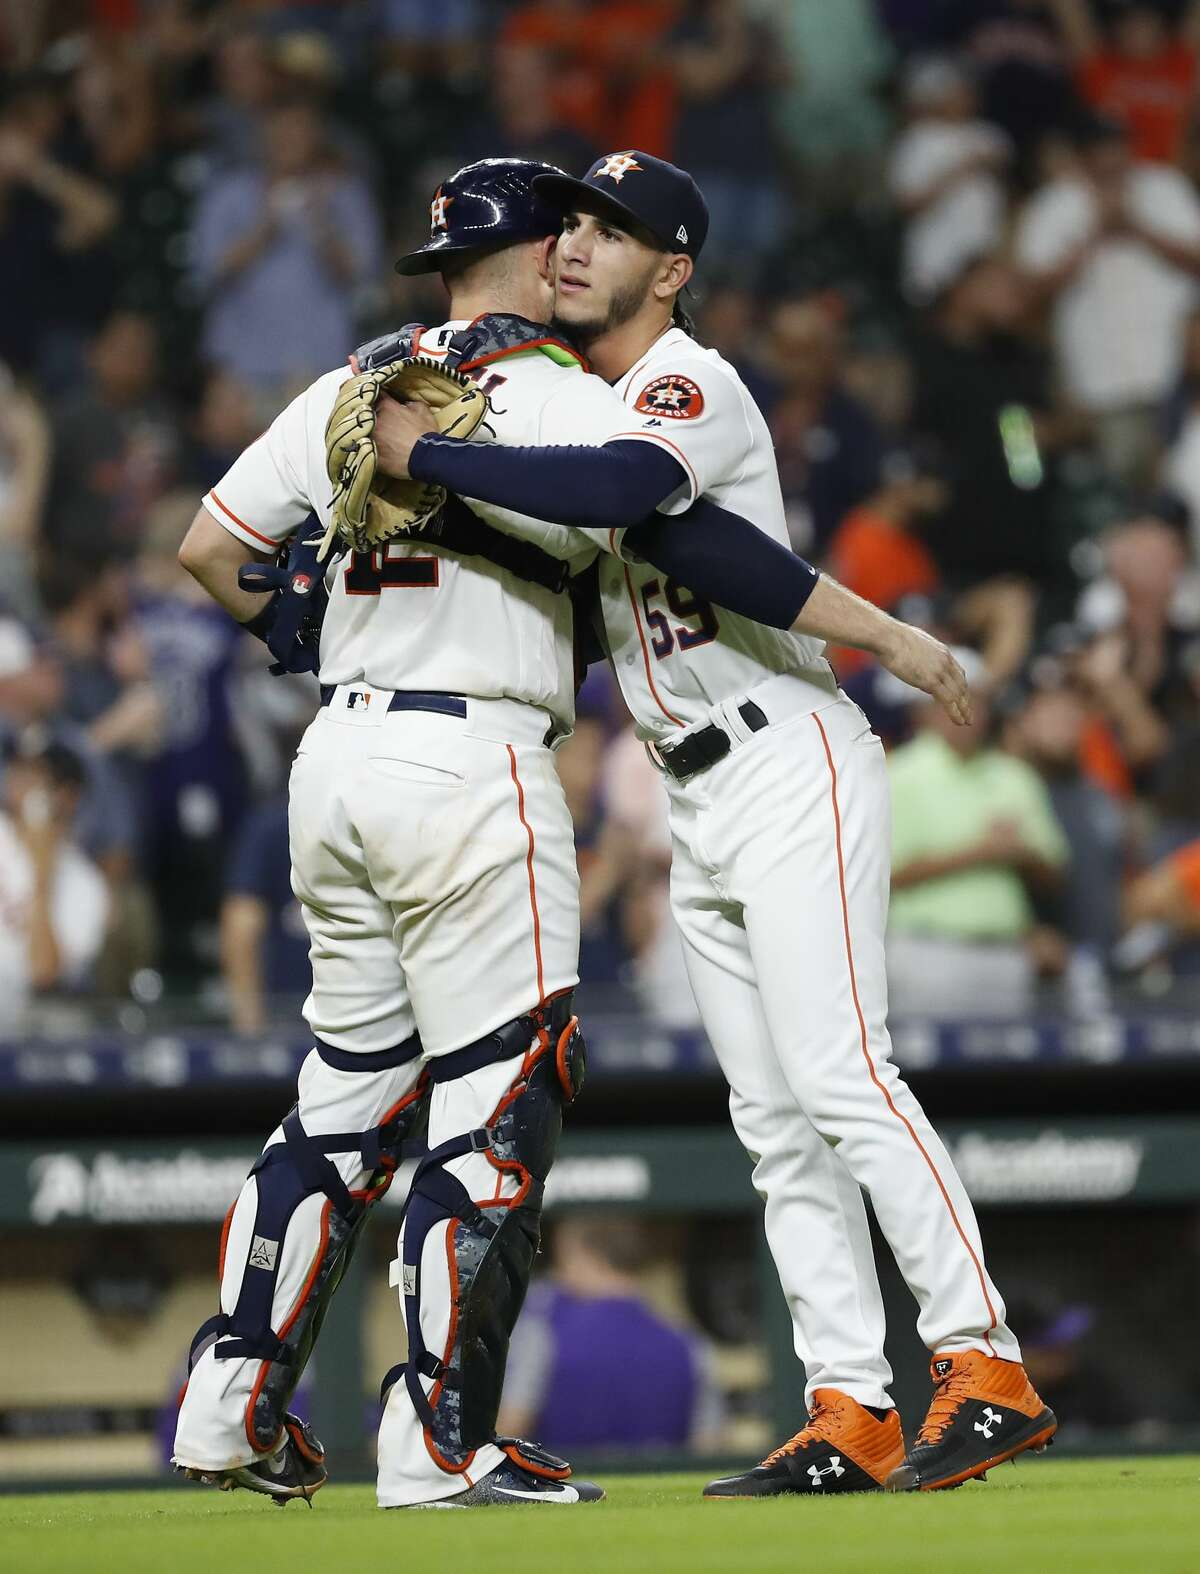 Houston Astros relief pitcher Cionel Perez (59) hugs catcher Max Stassi (12) after the Astros beat Colorado Rockies 12-1 during an MLB game at Minute Maid Park, Wedneaday, August 15, 2018, in Houston.